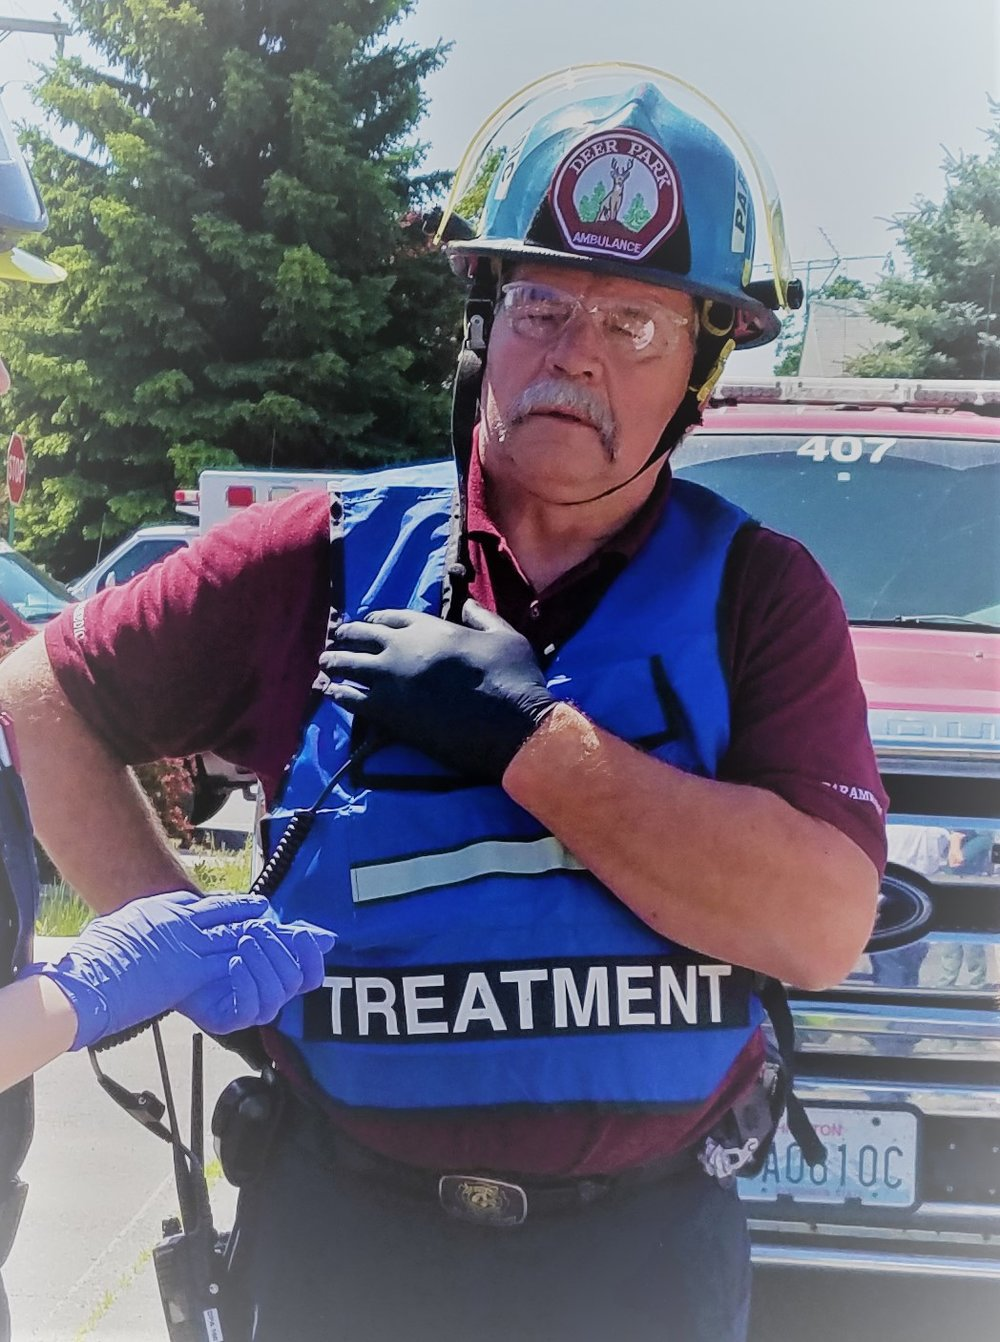 Thank you to KHQ for your story on the remarkable recovery of DPVA's Paramedic Rick Stone.    http://www.khq.com/story/37476614/a-spokane-emt-went-into-cardiac-arrest-his-wifes-cpr-training-saved-him